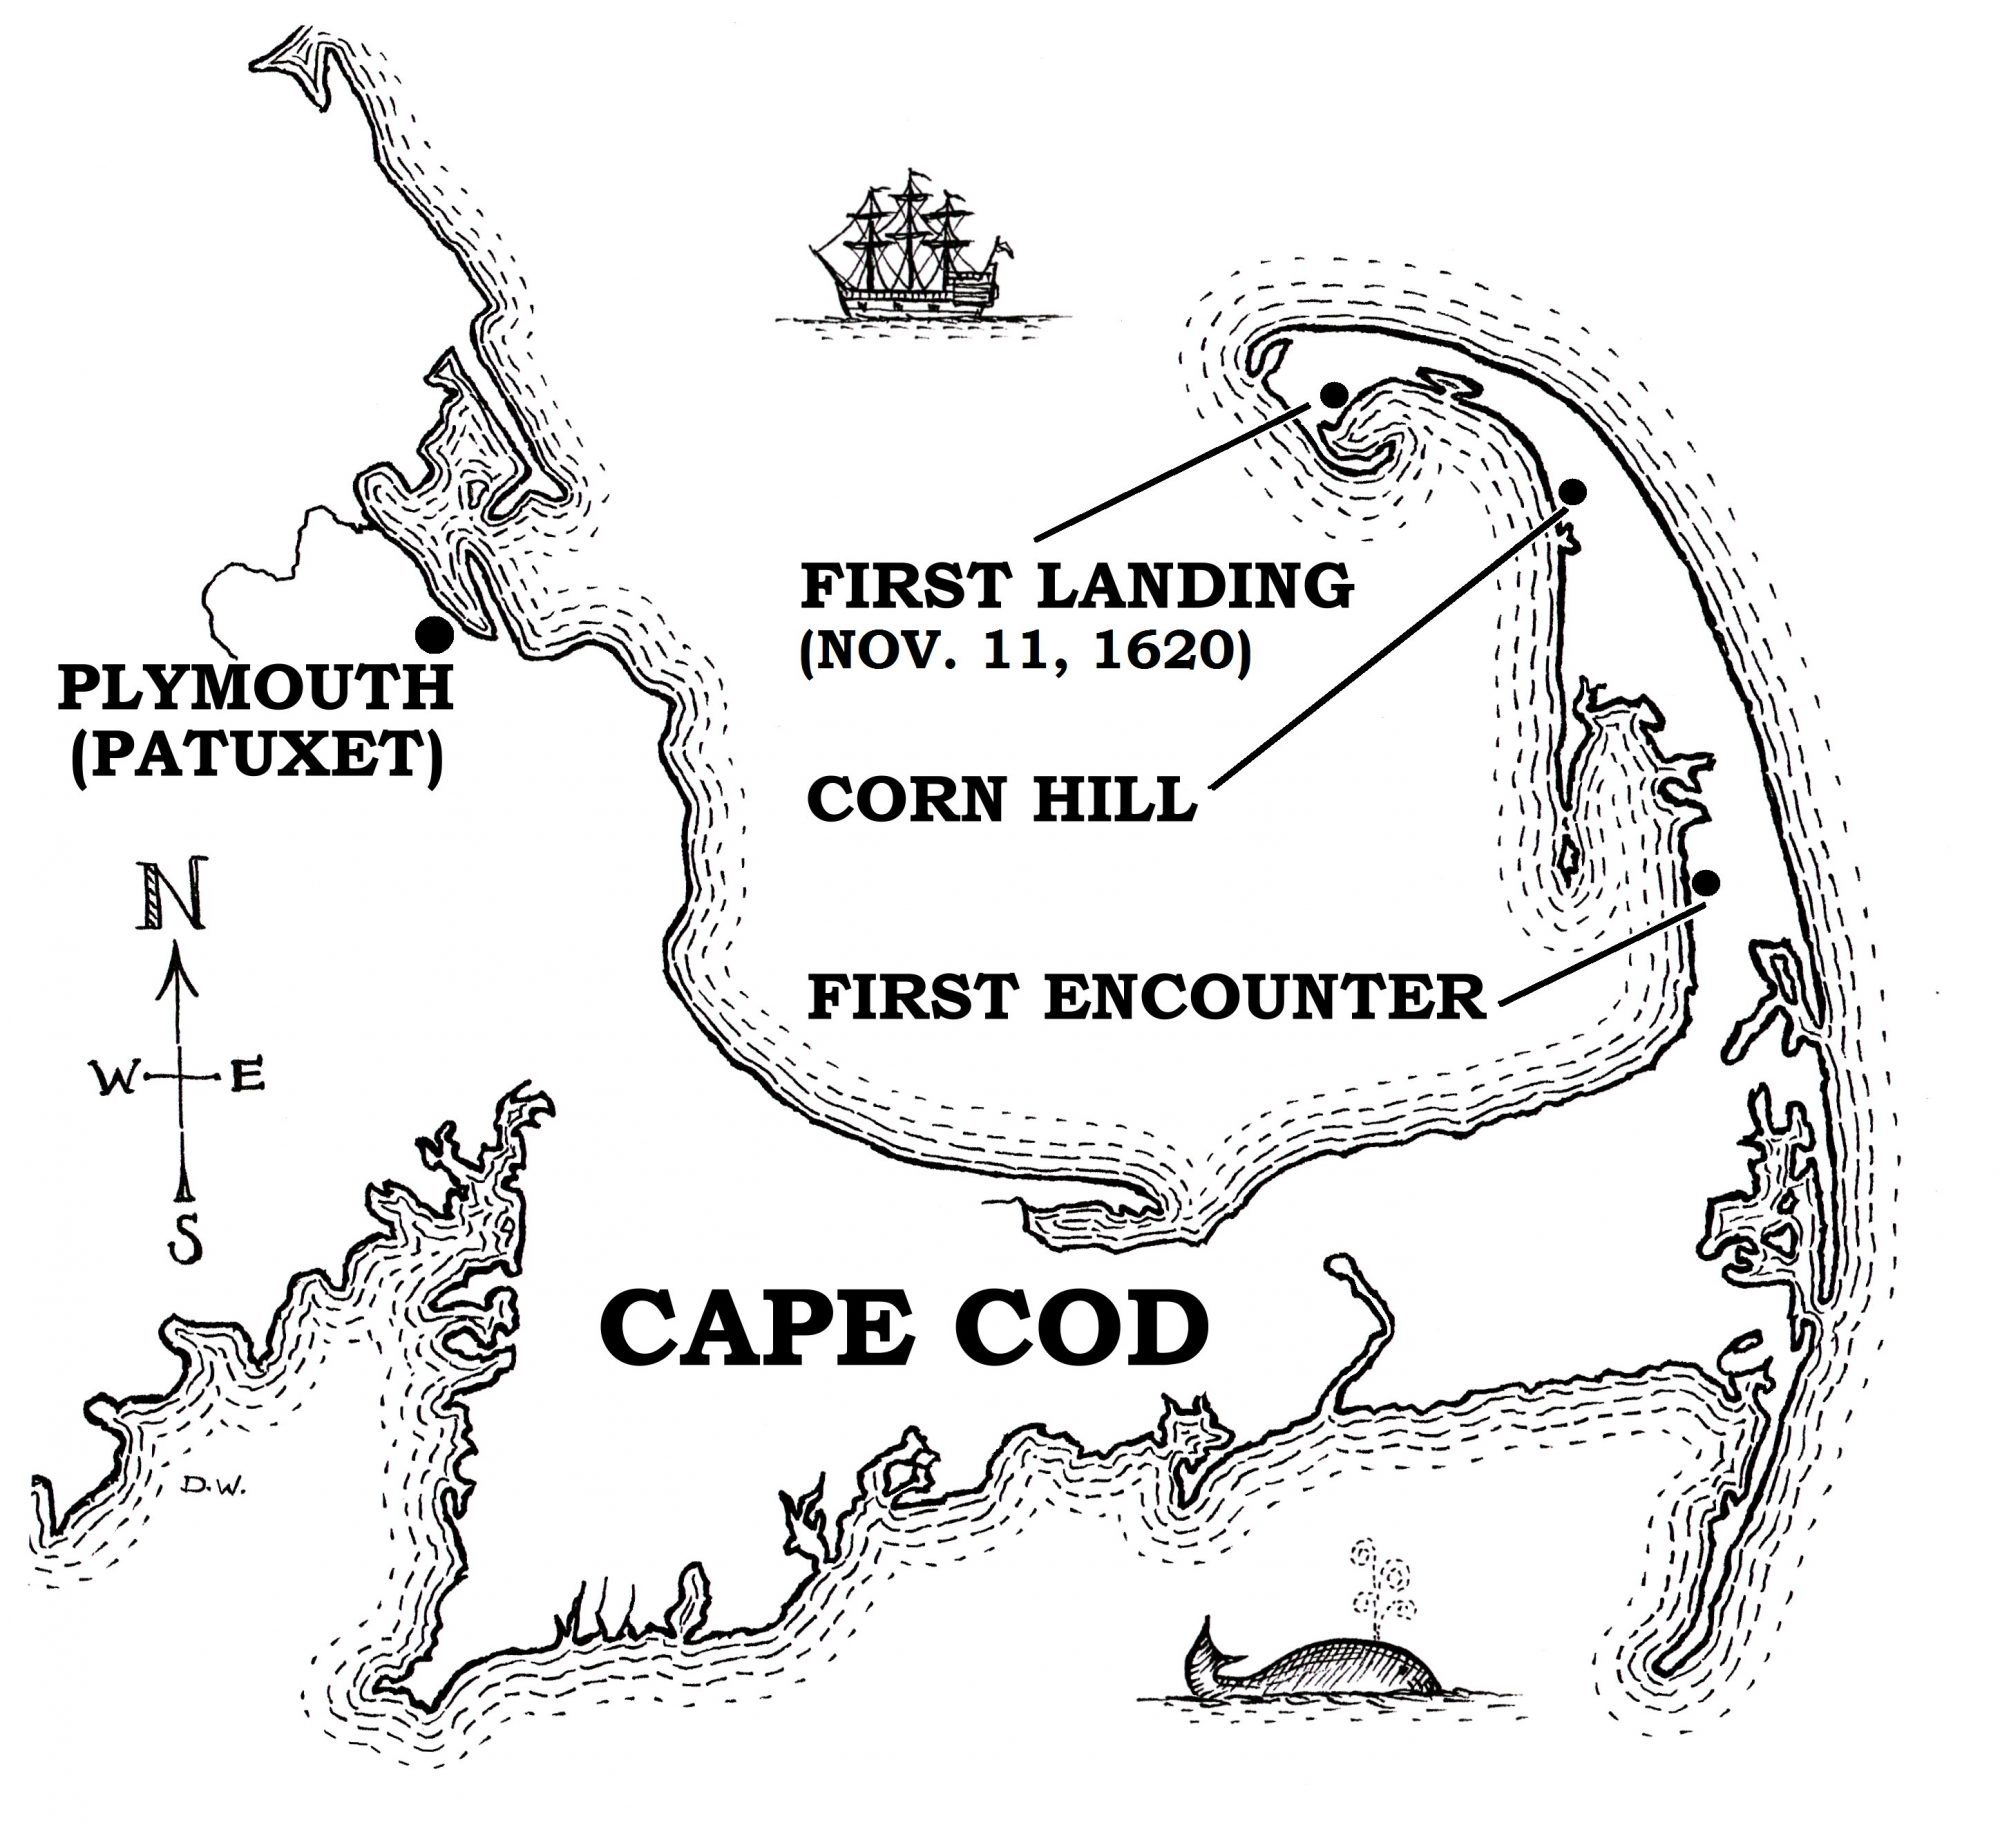 Drawing of Cape Cod as it was when the Pilgrims landed on the Mayflower.